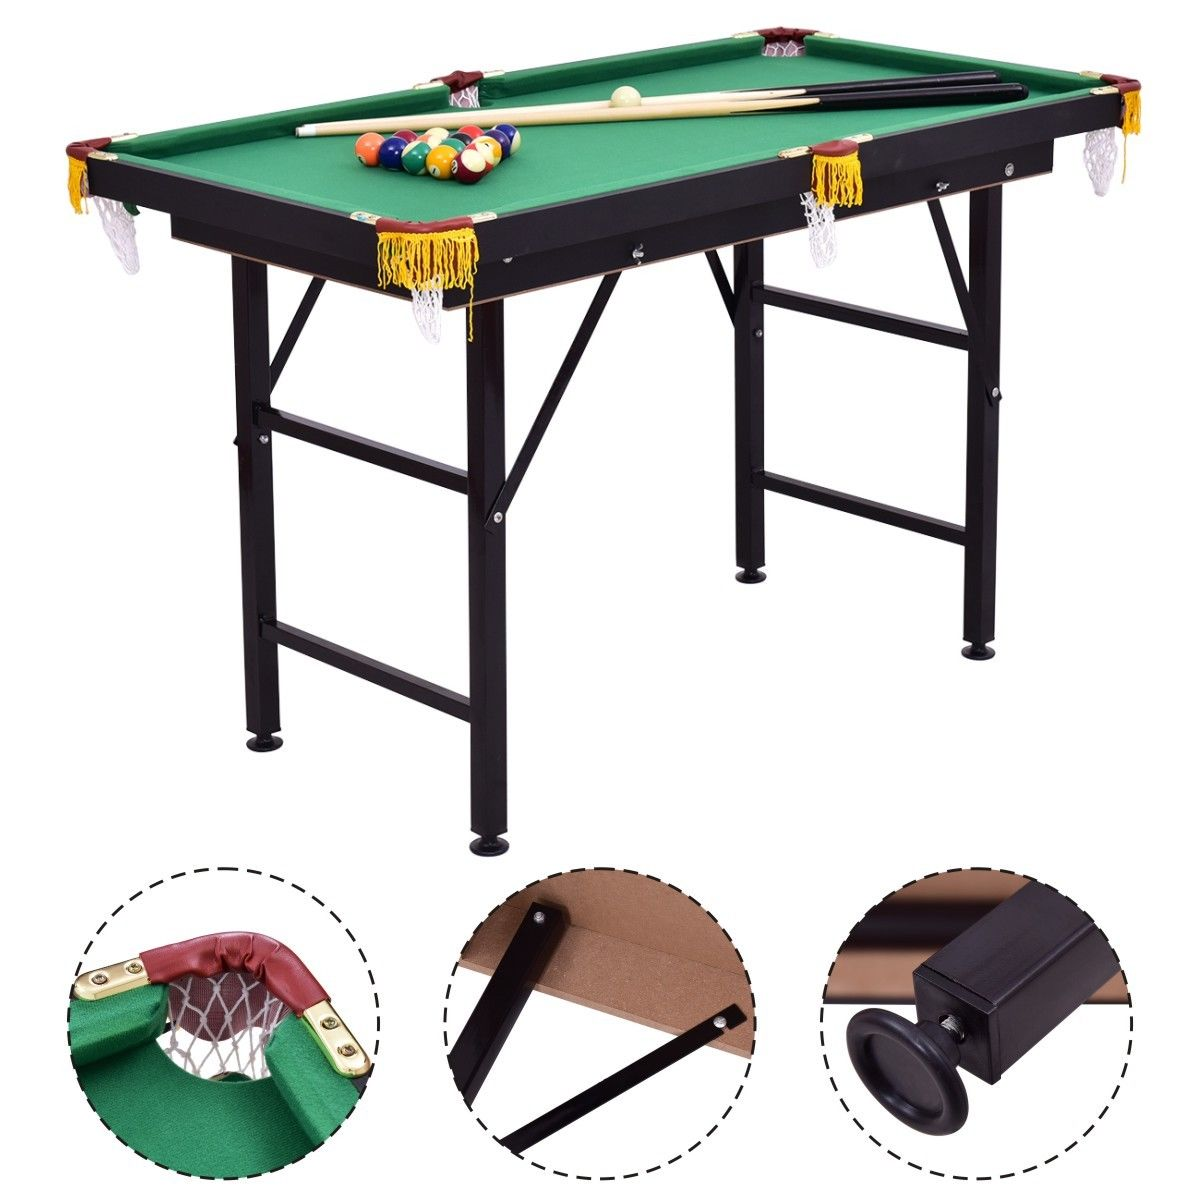 Costway 47'' Pool Table Billiard Table Toys Game Set w 2 Cue Triangle Rack Ball and Chalk by Costway